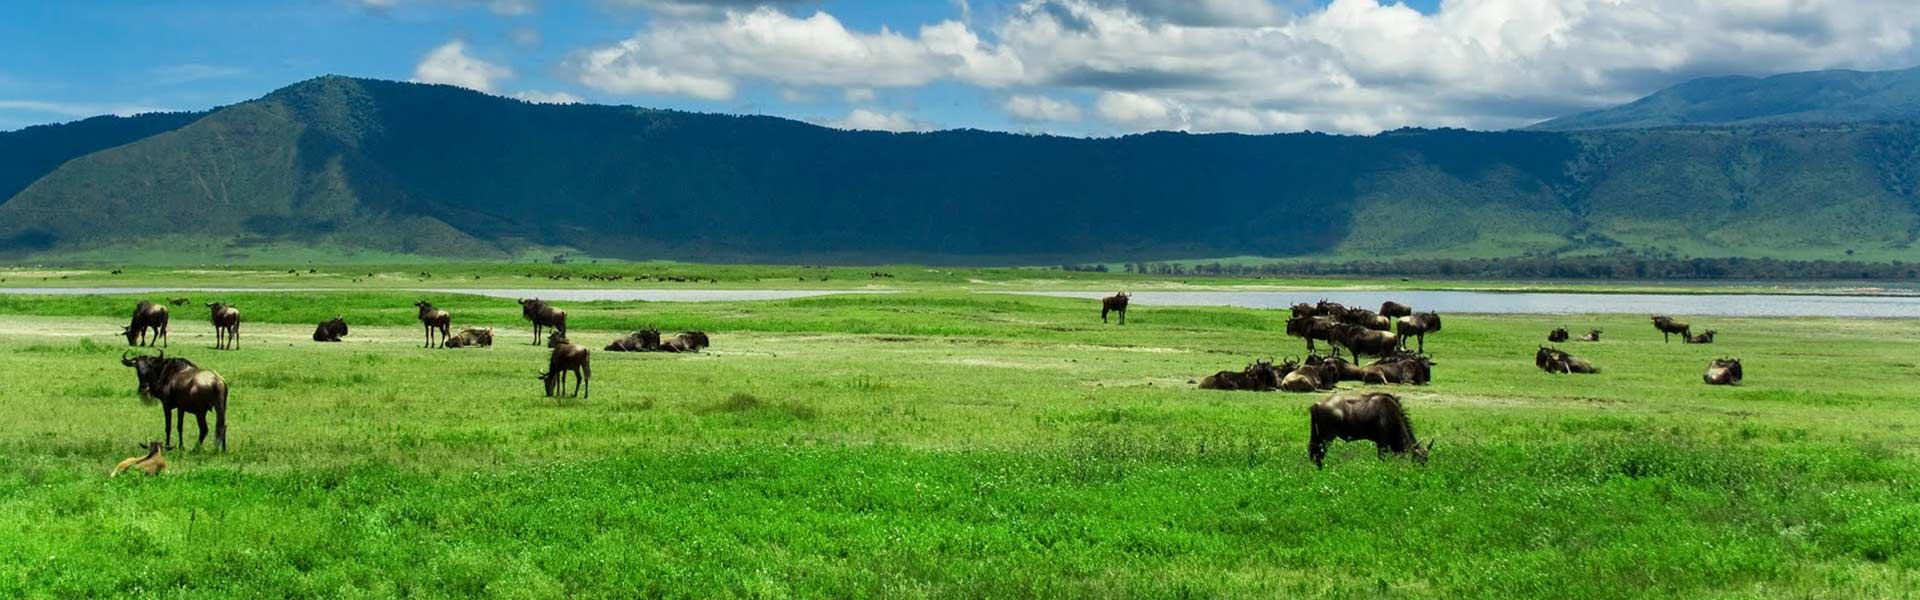 Animals grazing in Tanzania at the Ngorongoro Conservation Area